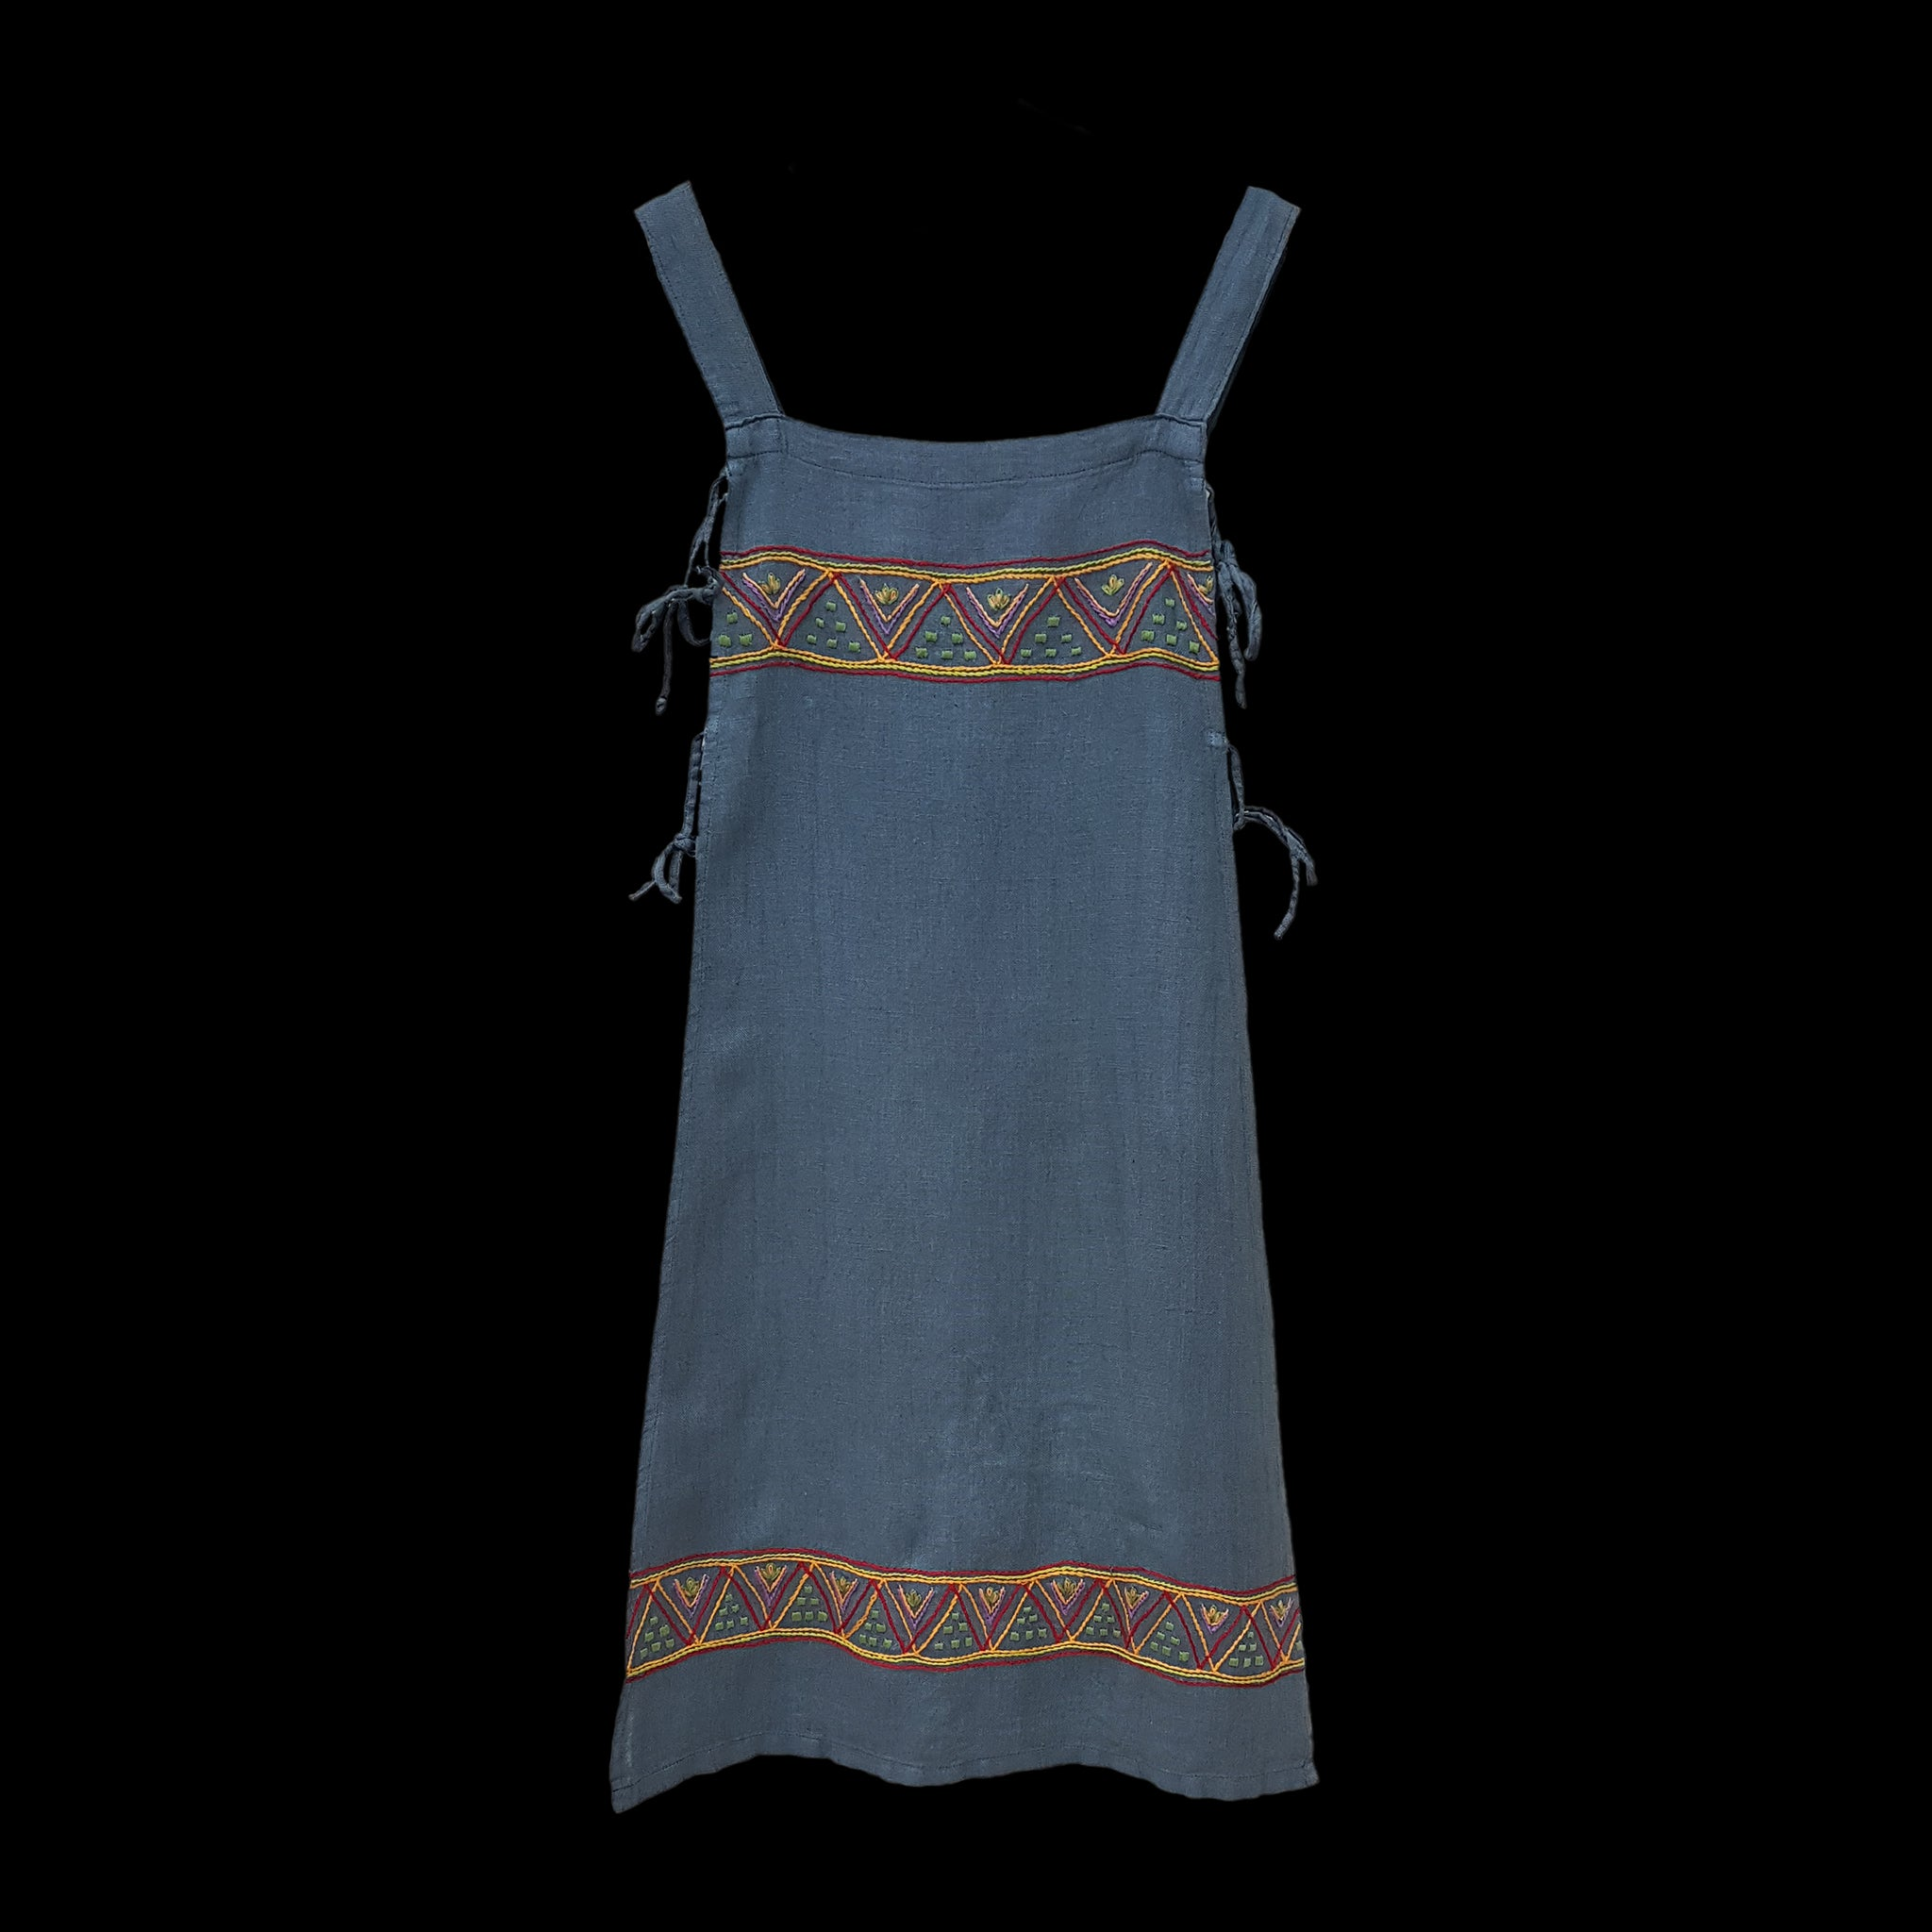 Handmade Blue Linen Embroidered Women's Viking Hangerock / Apron